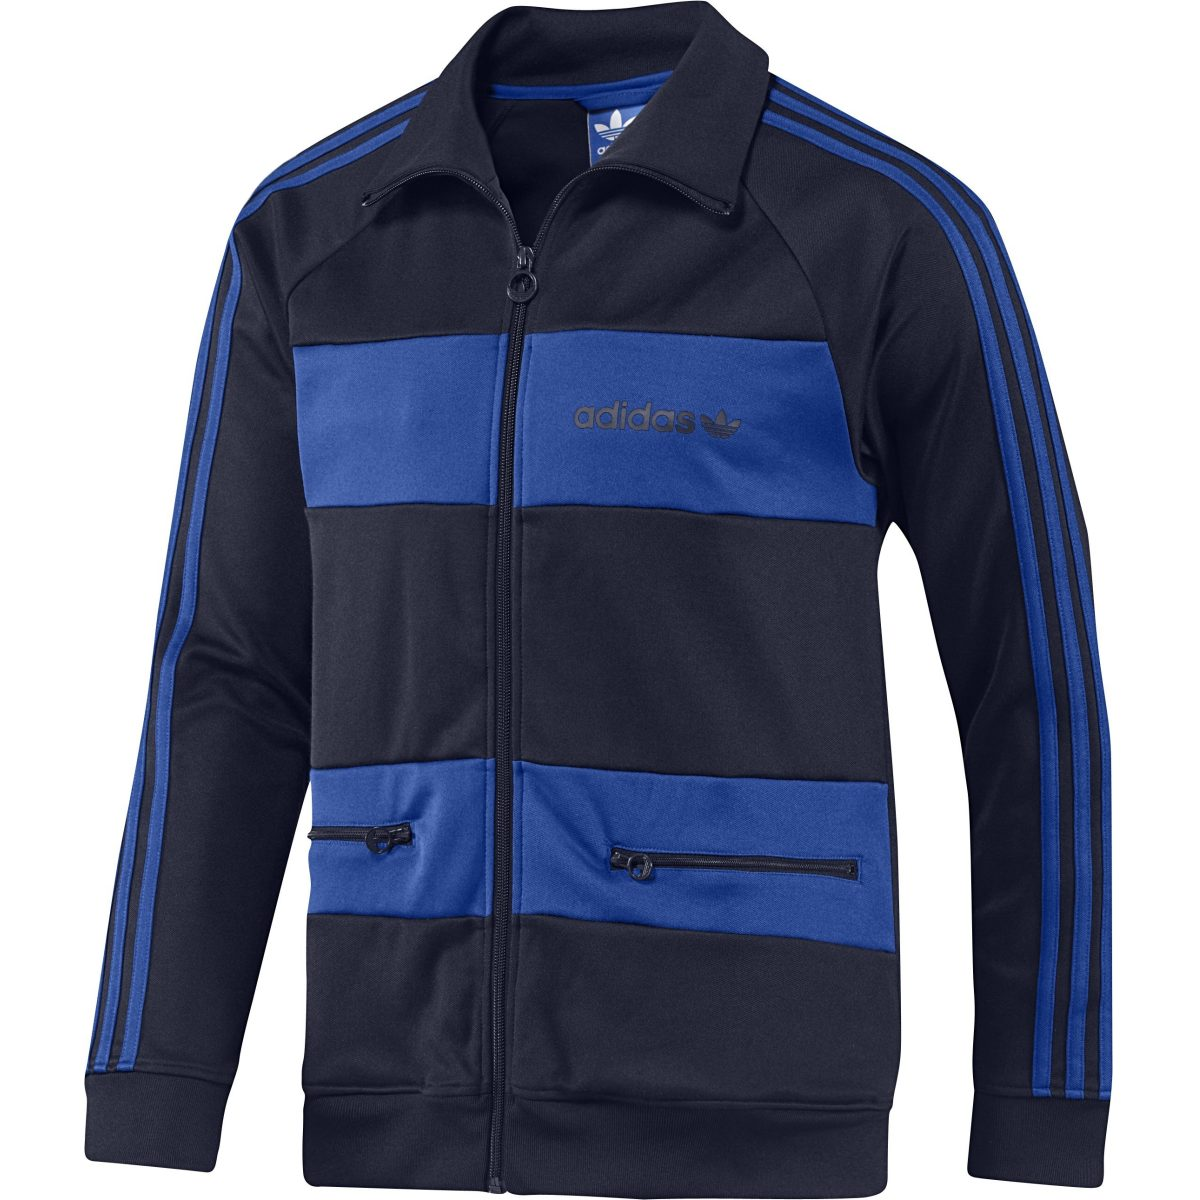 adidas originals beckenbauer track top wei blau herren jacke sweatjacke ebay. Black Bedroom Furniture Sets. Home Design Ideas